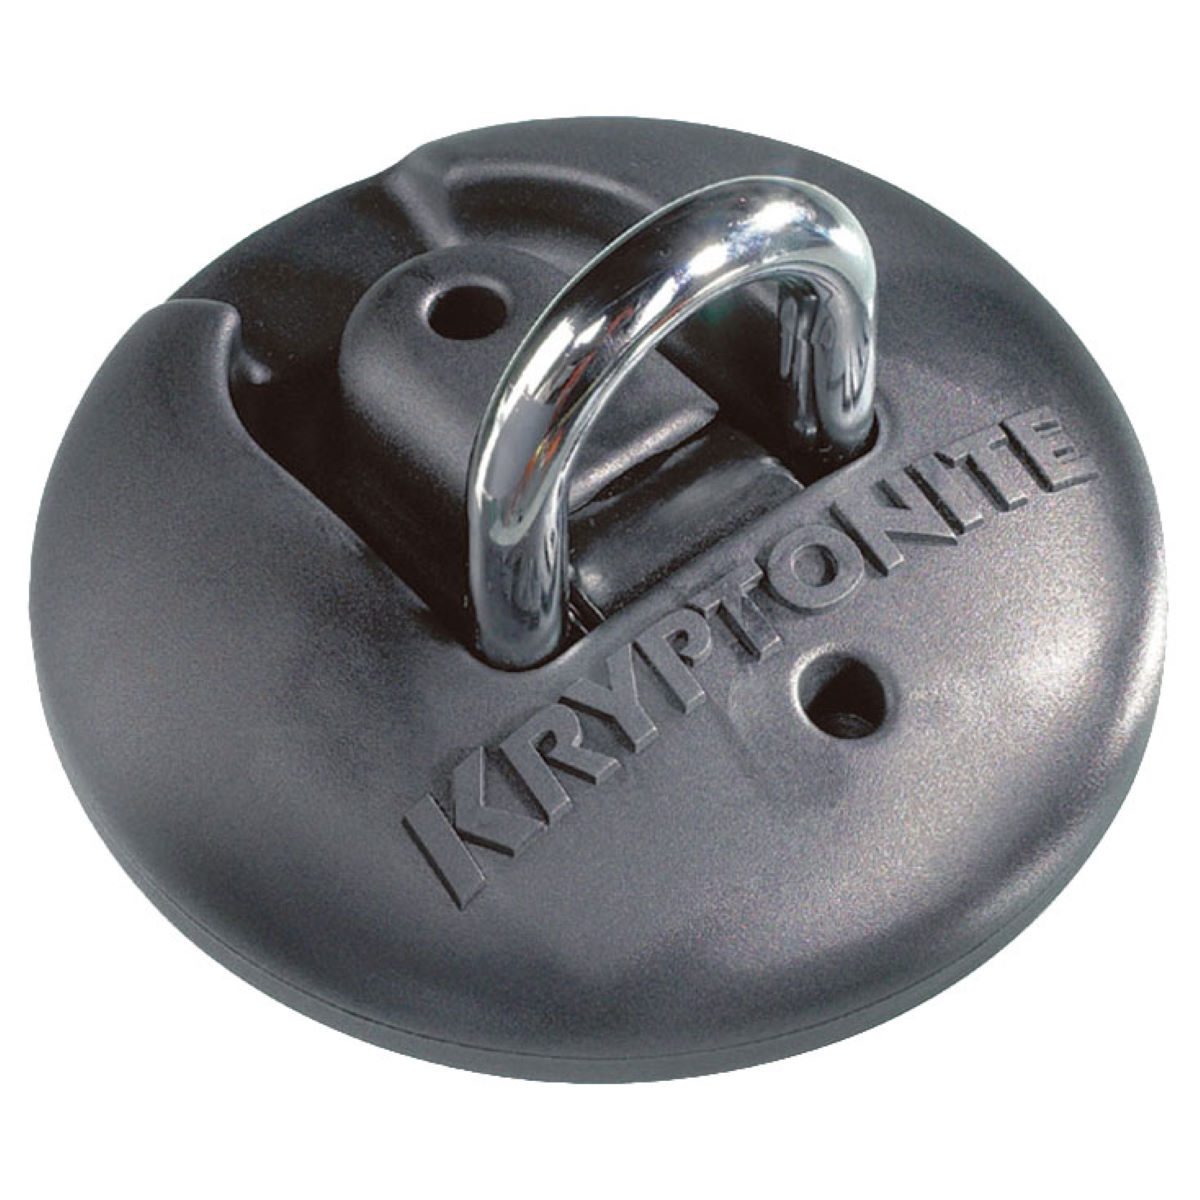 Ancre de fixation sol Kryptonite Stronghold Surface - Noir Ancrage